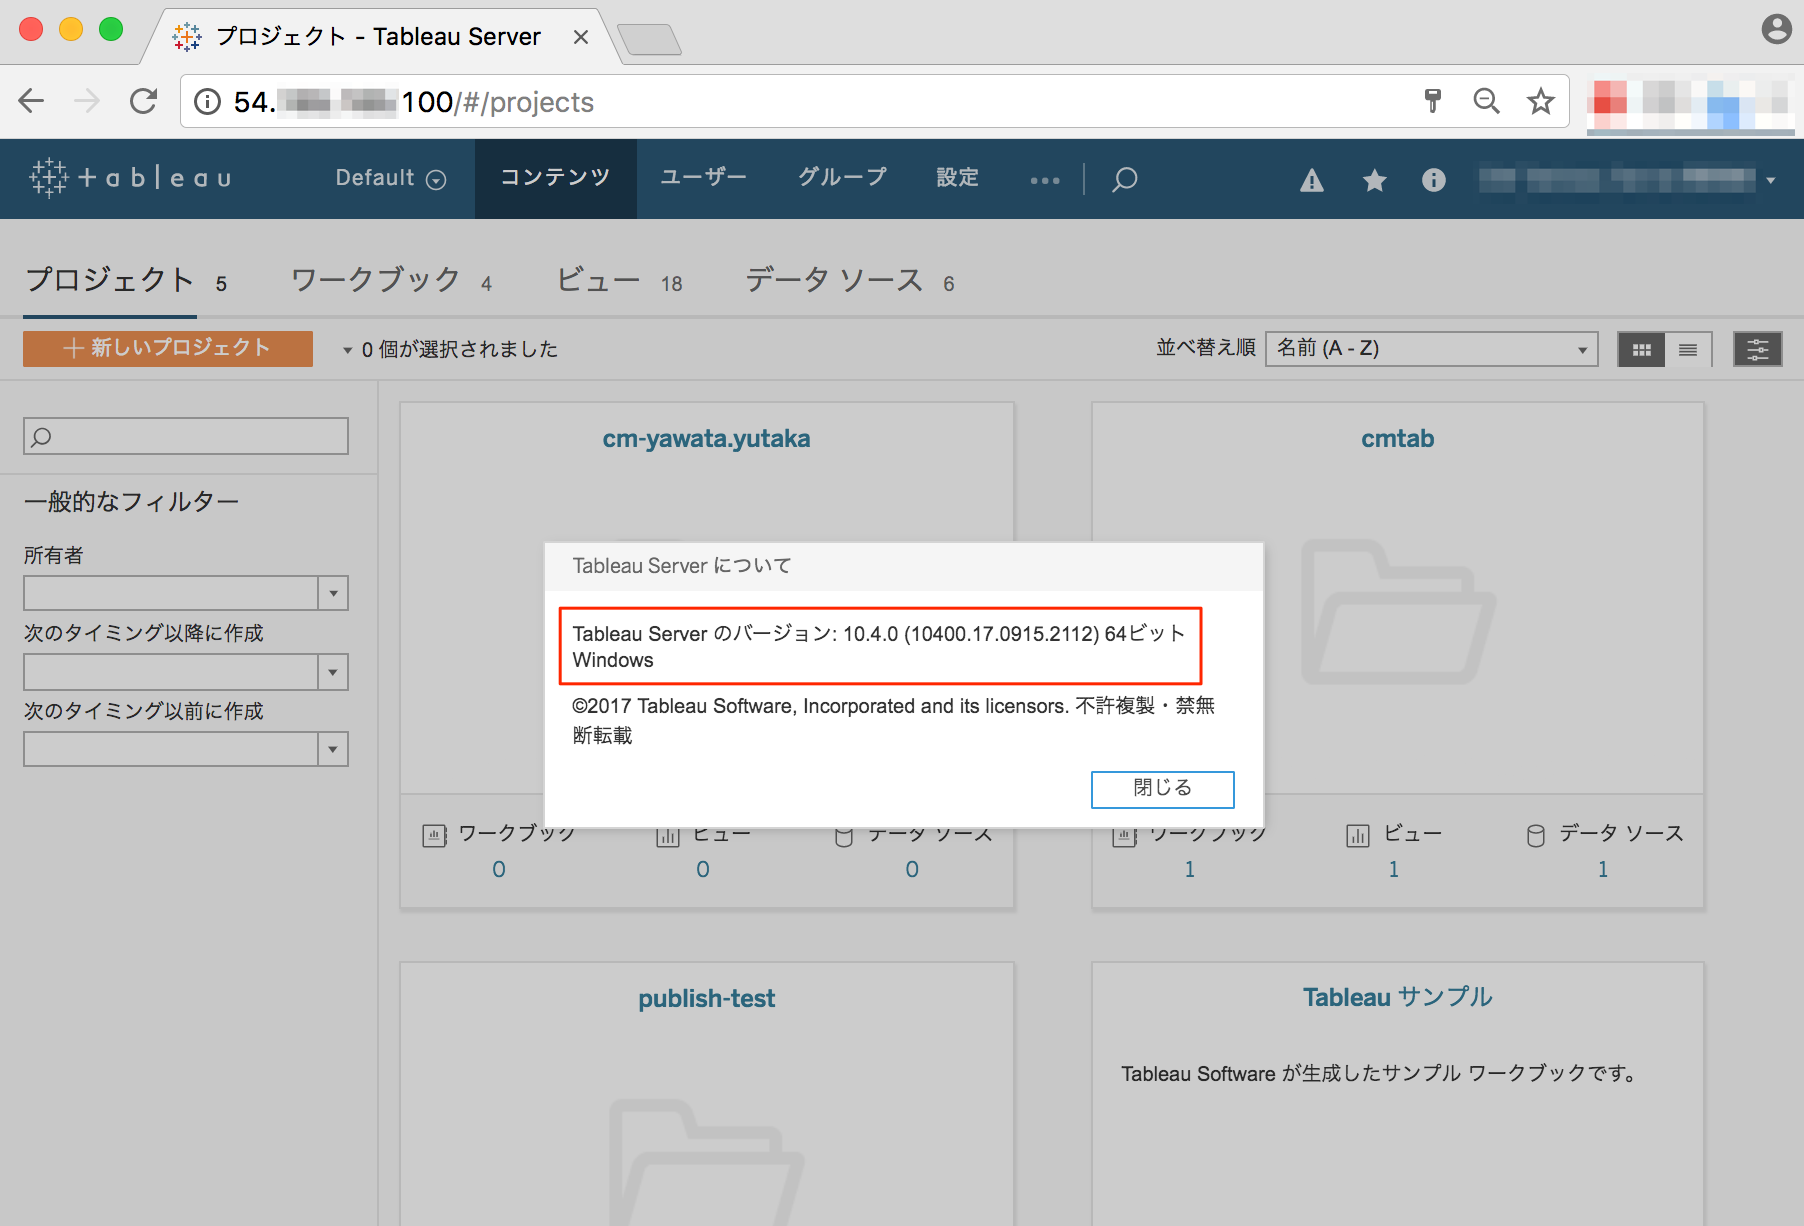 tableau105-new-features-publish-as_02